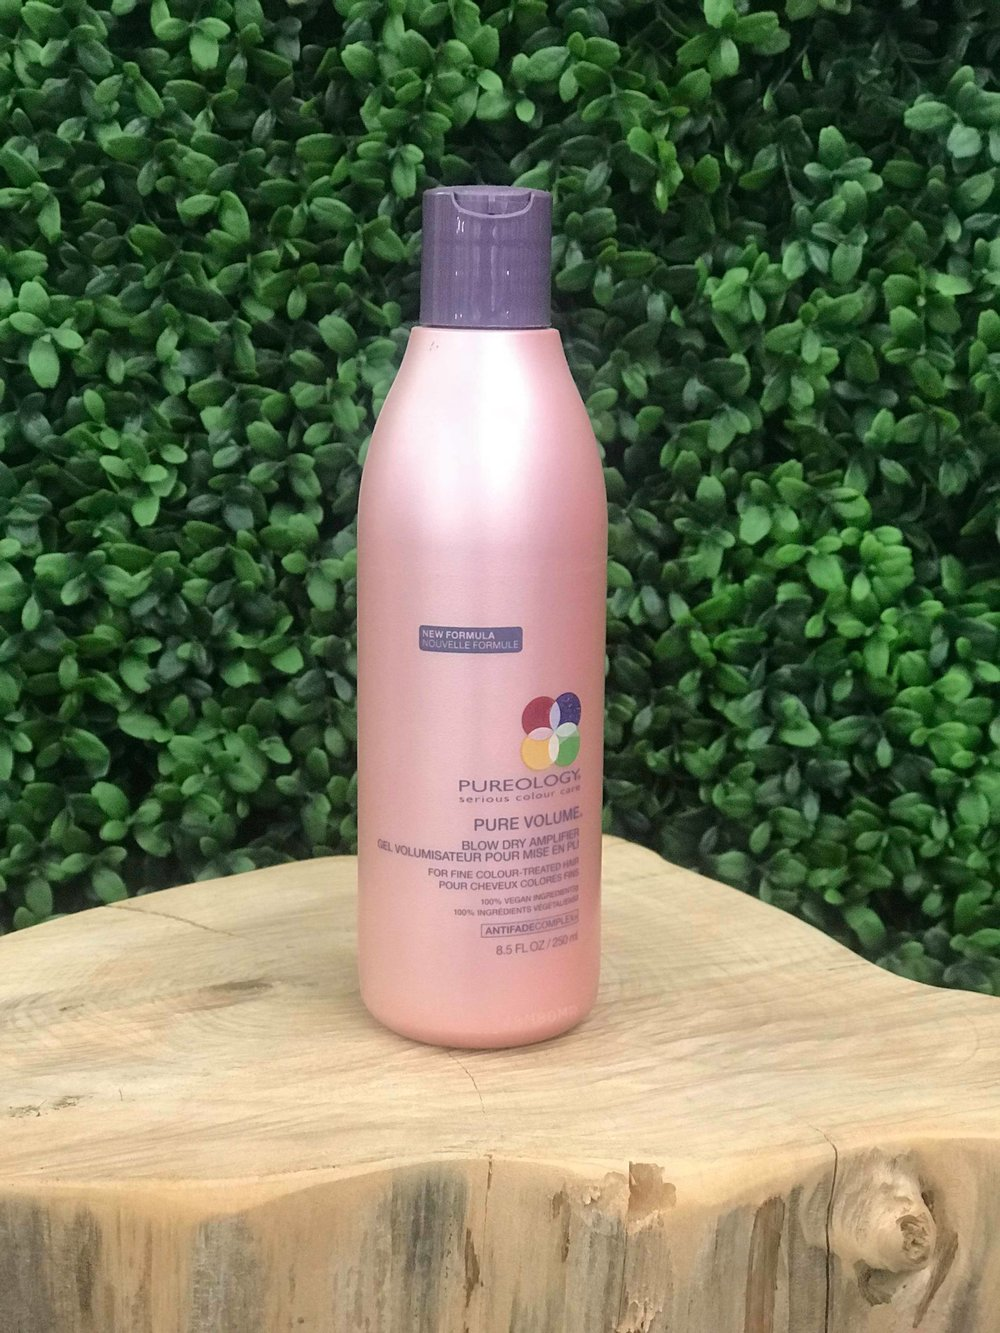 Pure Volume Blow Dry Amplifier 250ml - $43.00